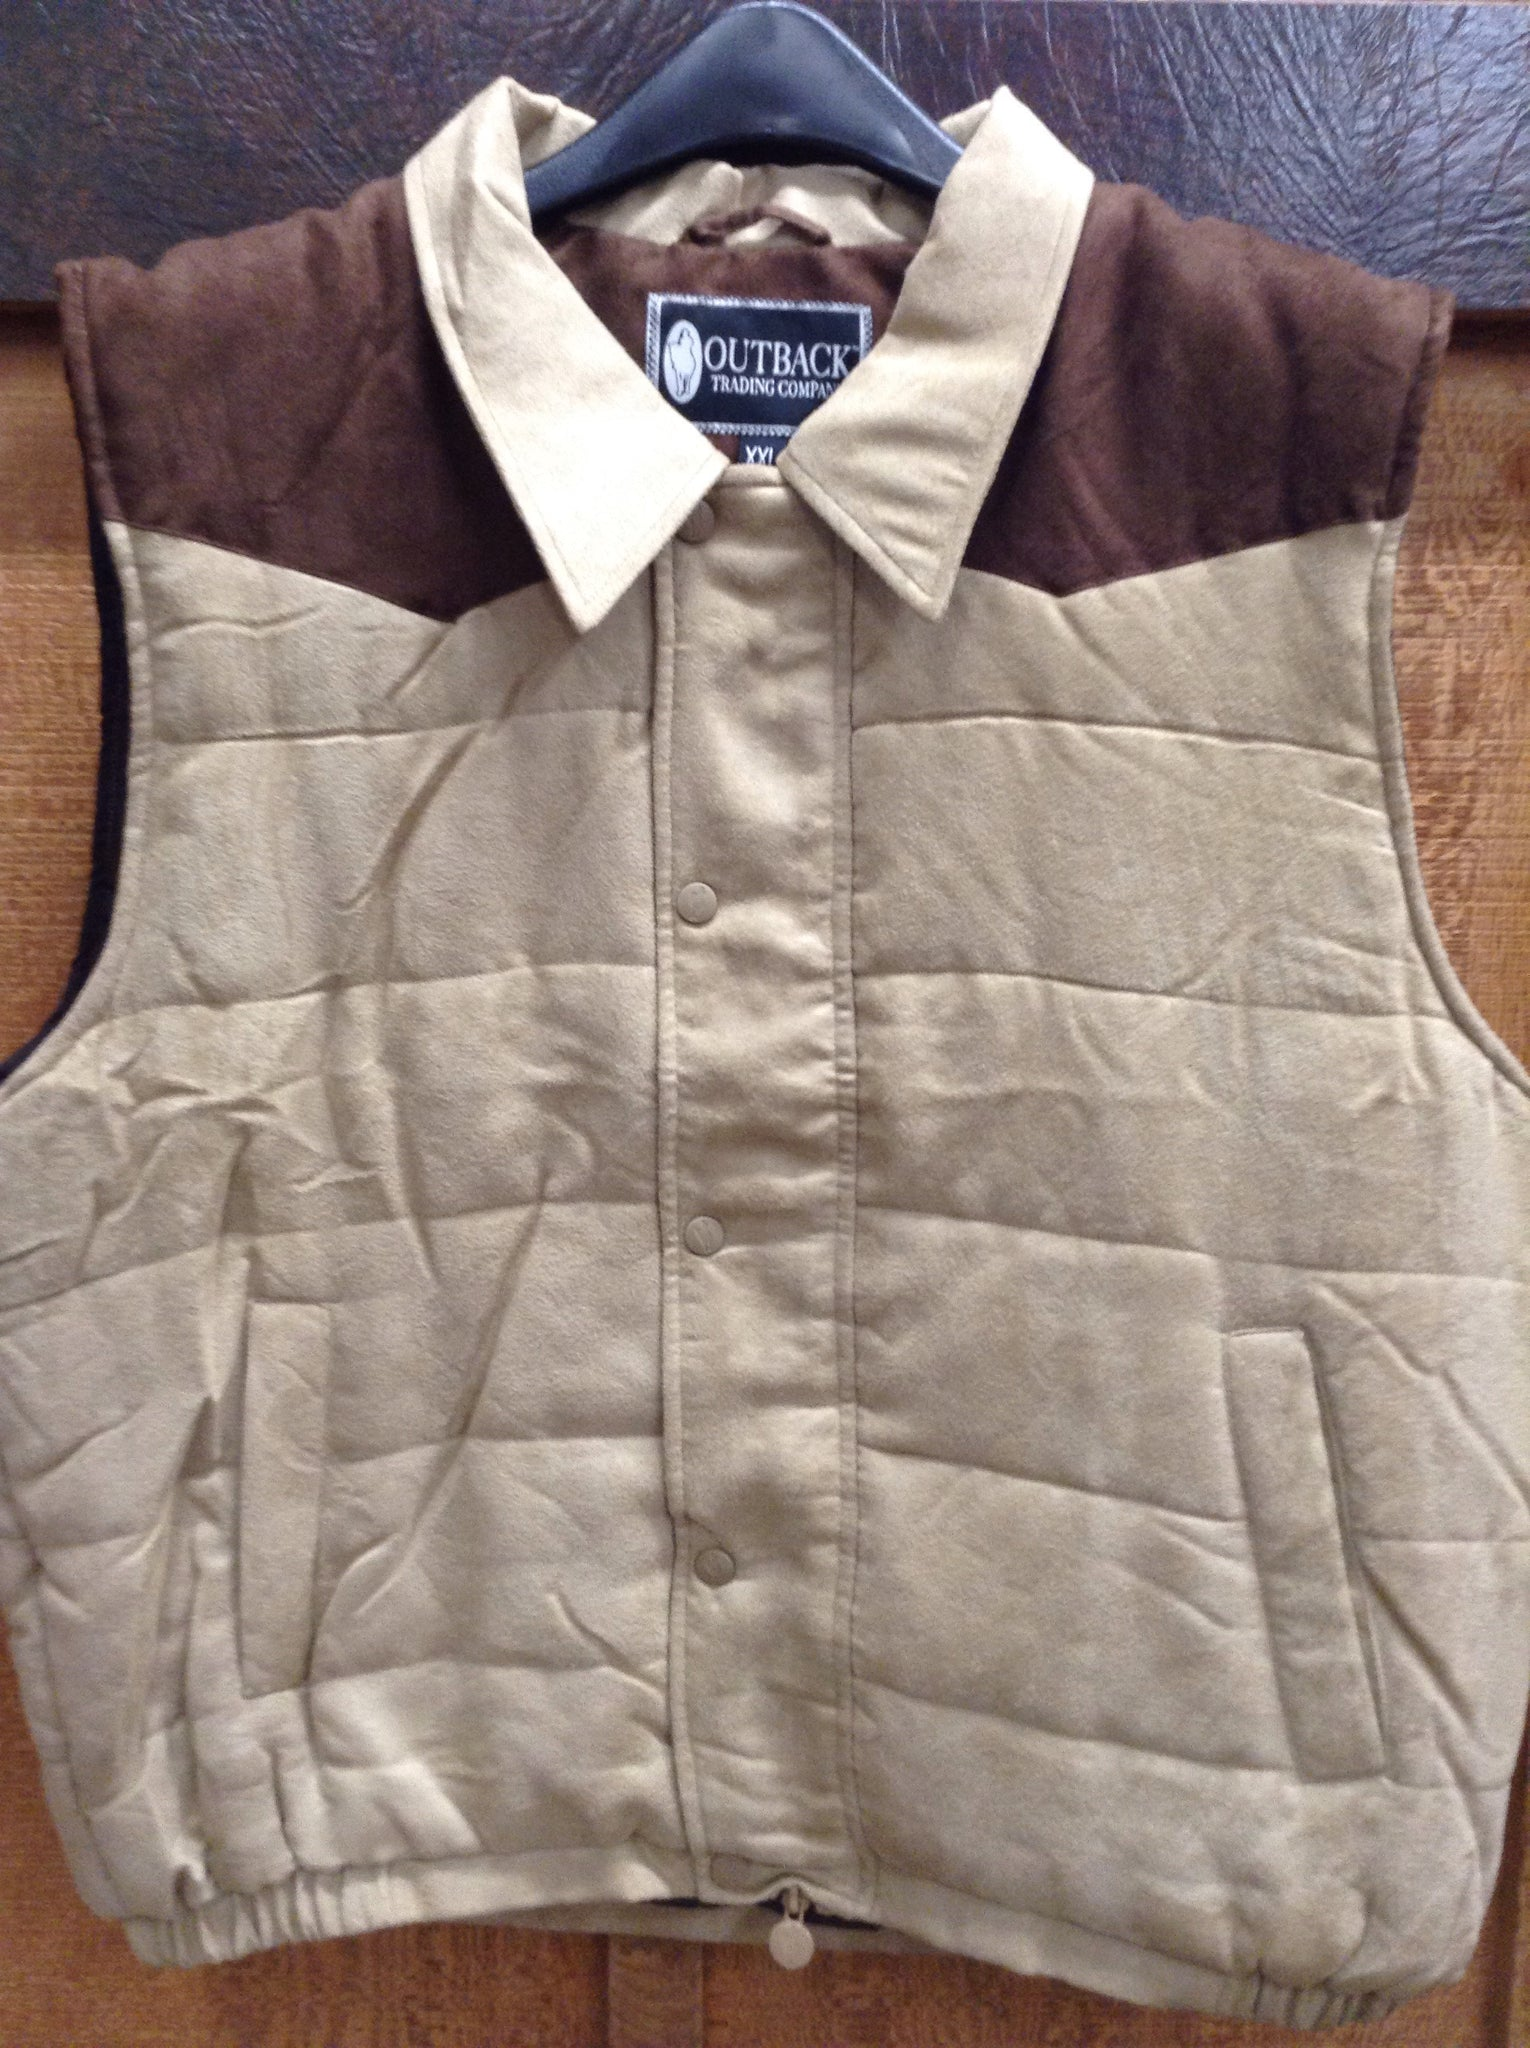 Outerwear - Outback Men's Clay Vest/29741 - OUTBACK TRADING COMPANY - Mock Brothers Saddlery and Western Wear